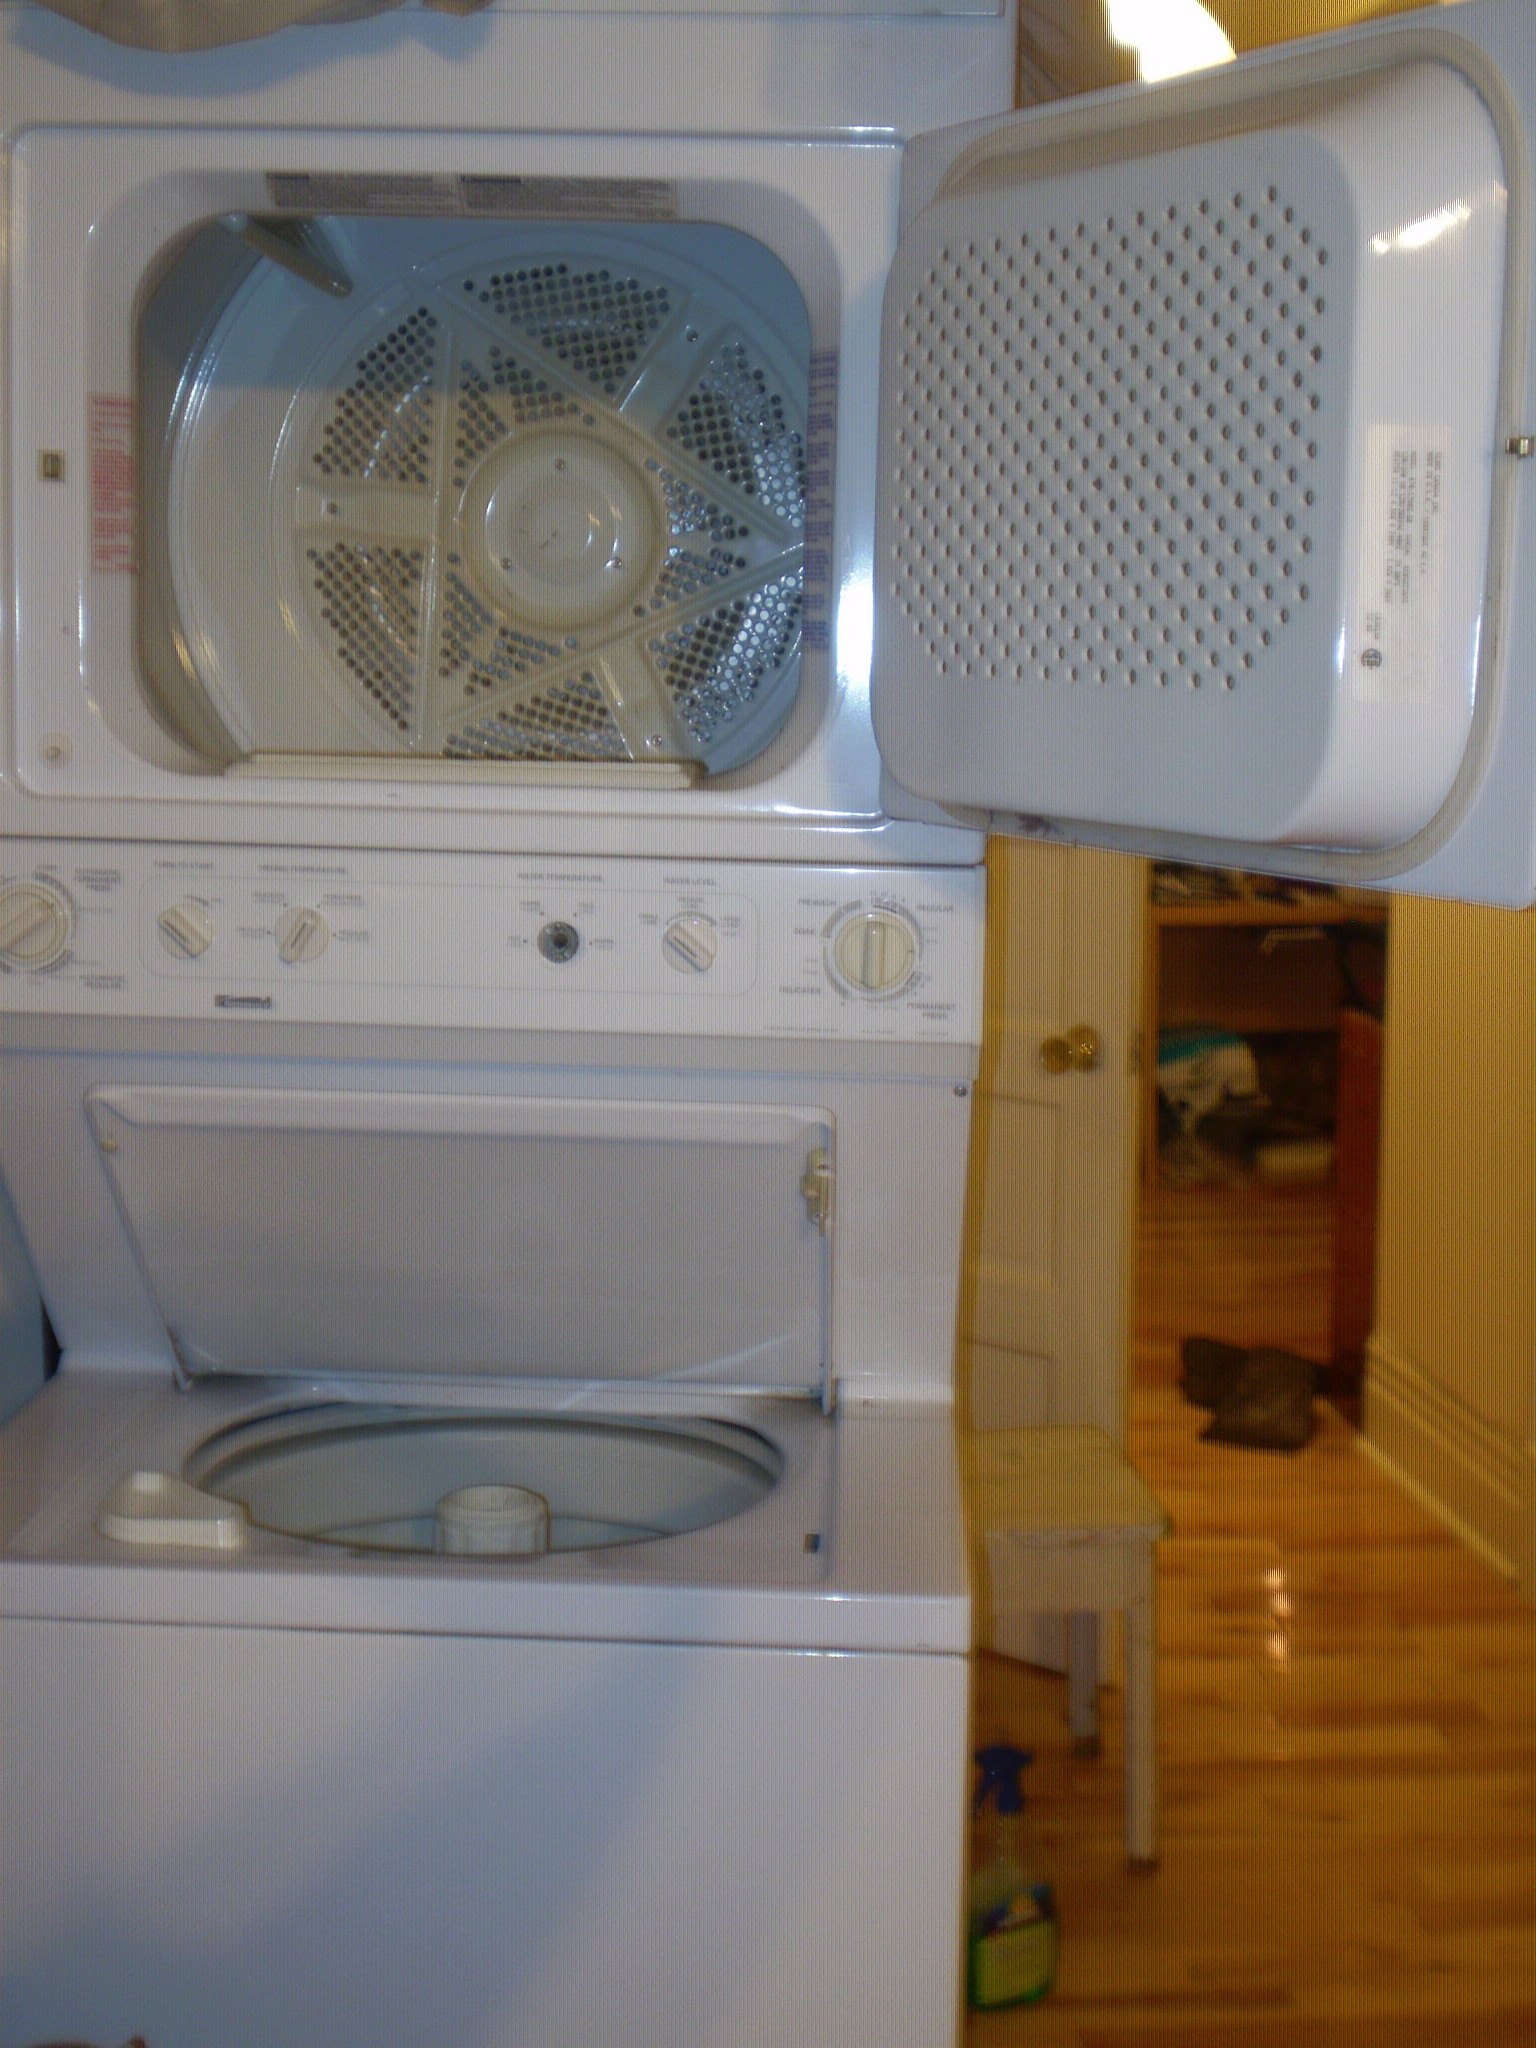 My Kenmore Stackable Washer and Dryer Model no 9701780250